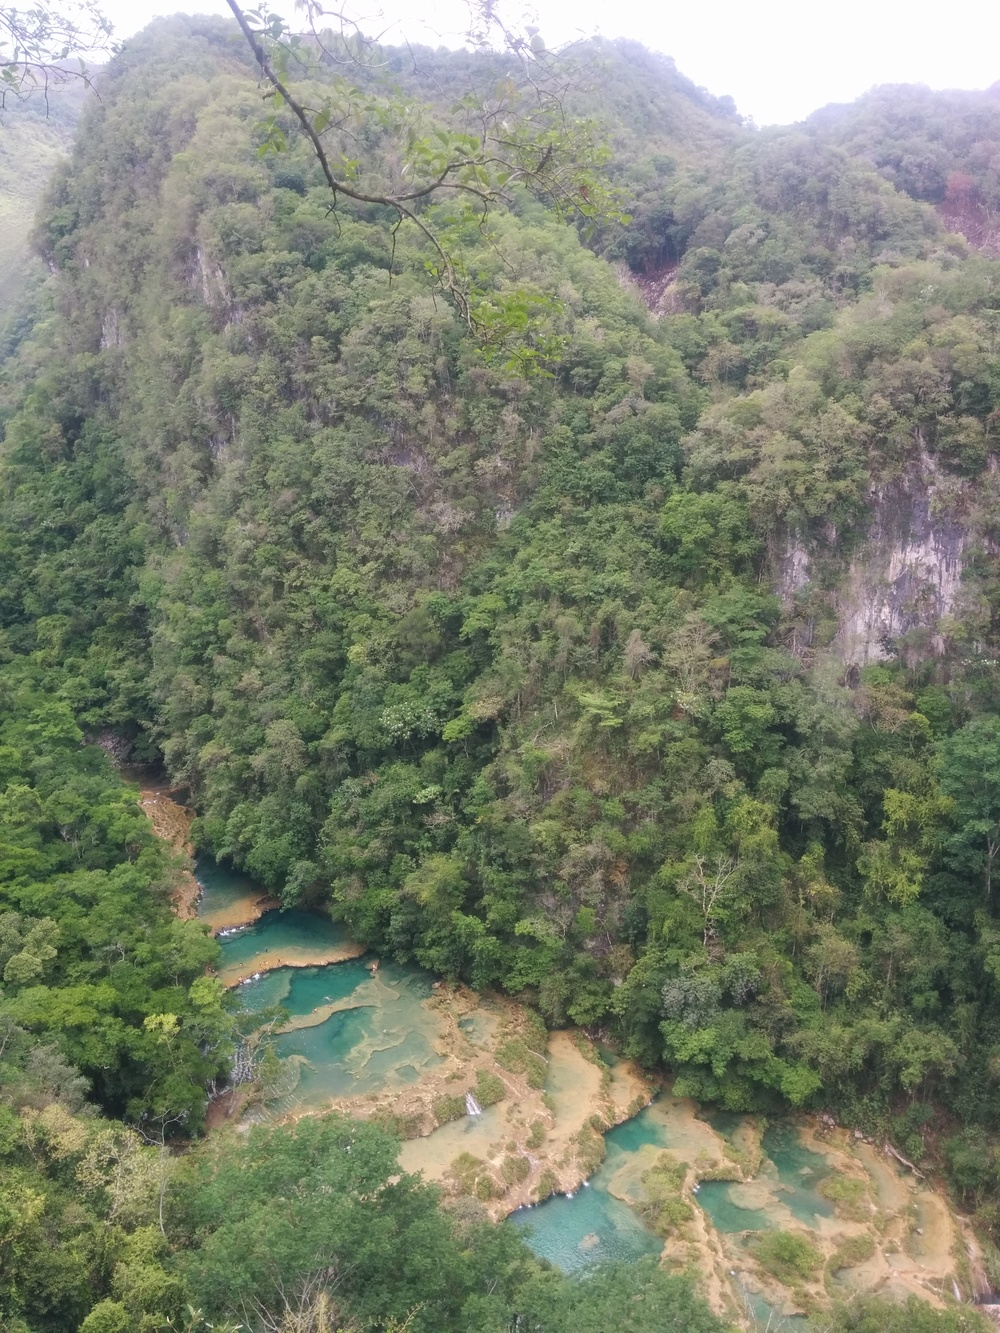 The money shot. Pools of Semuc Champey.